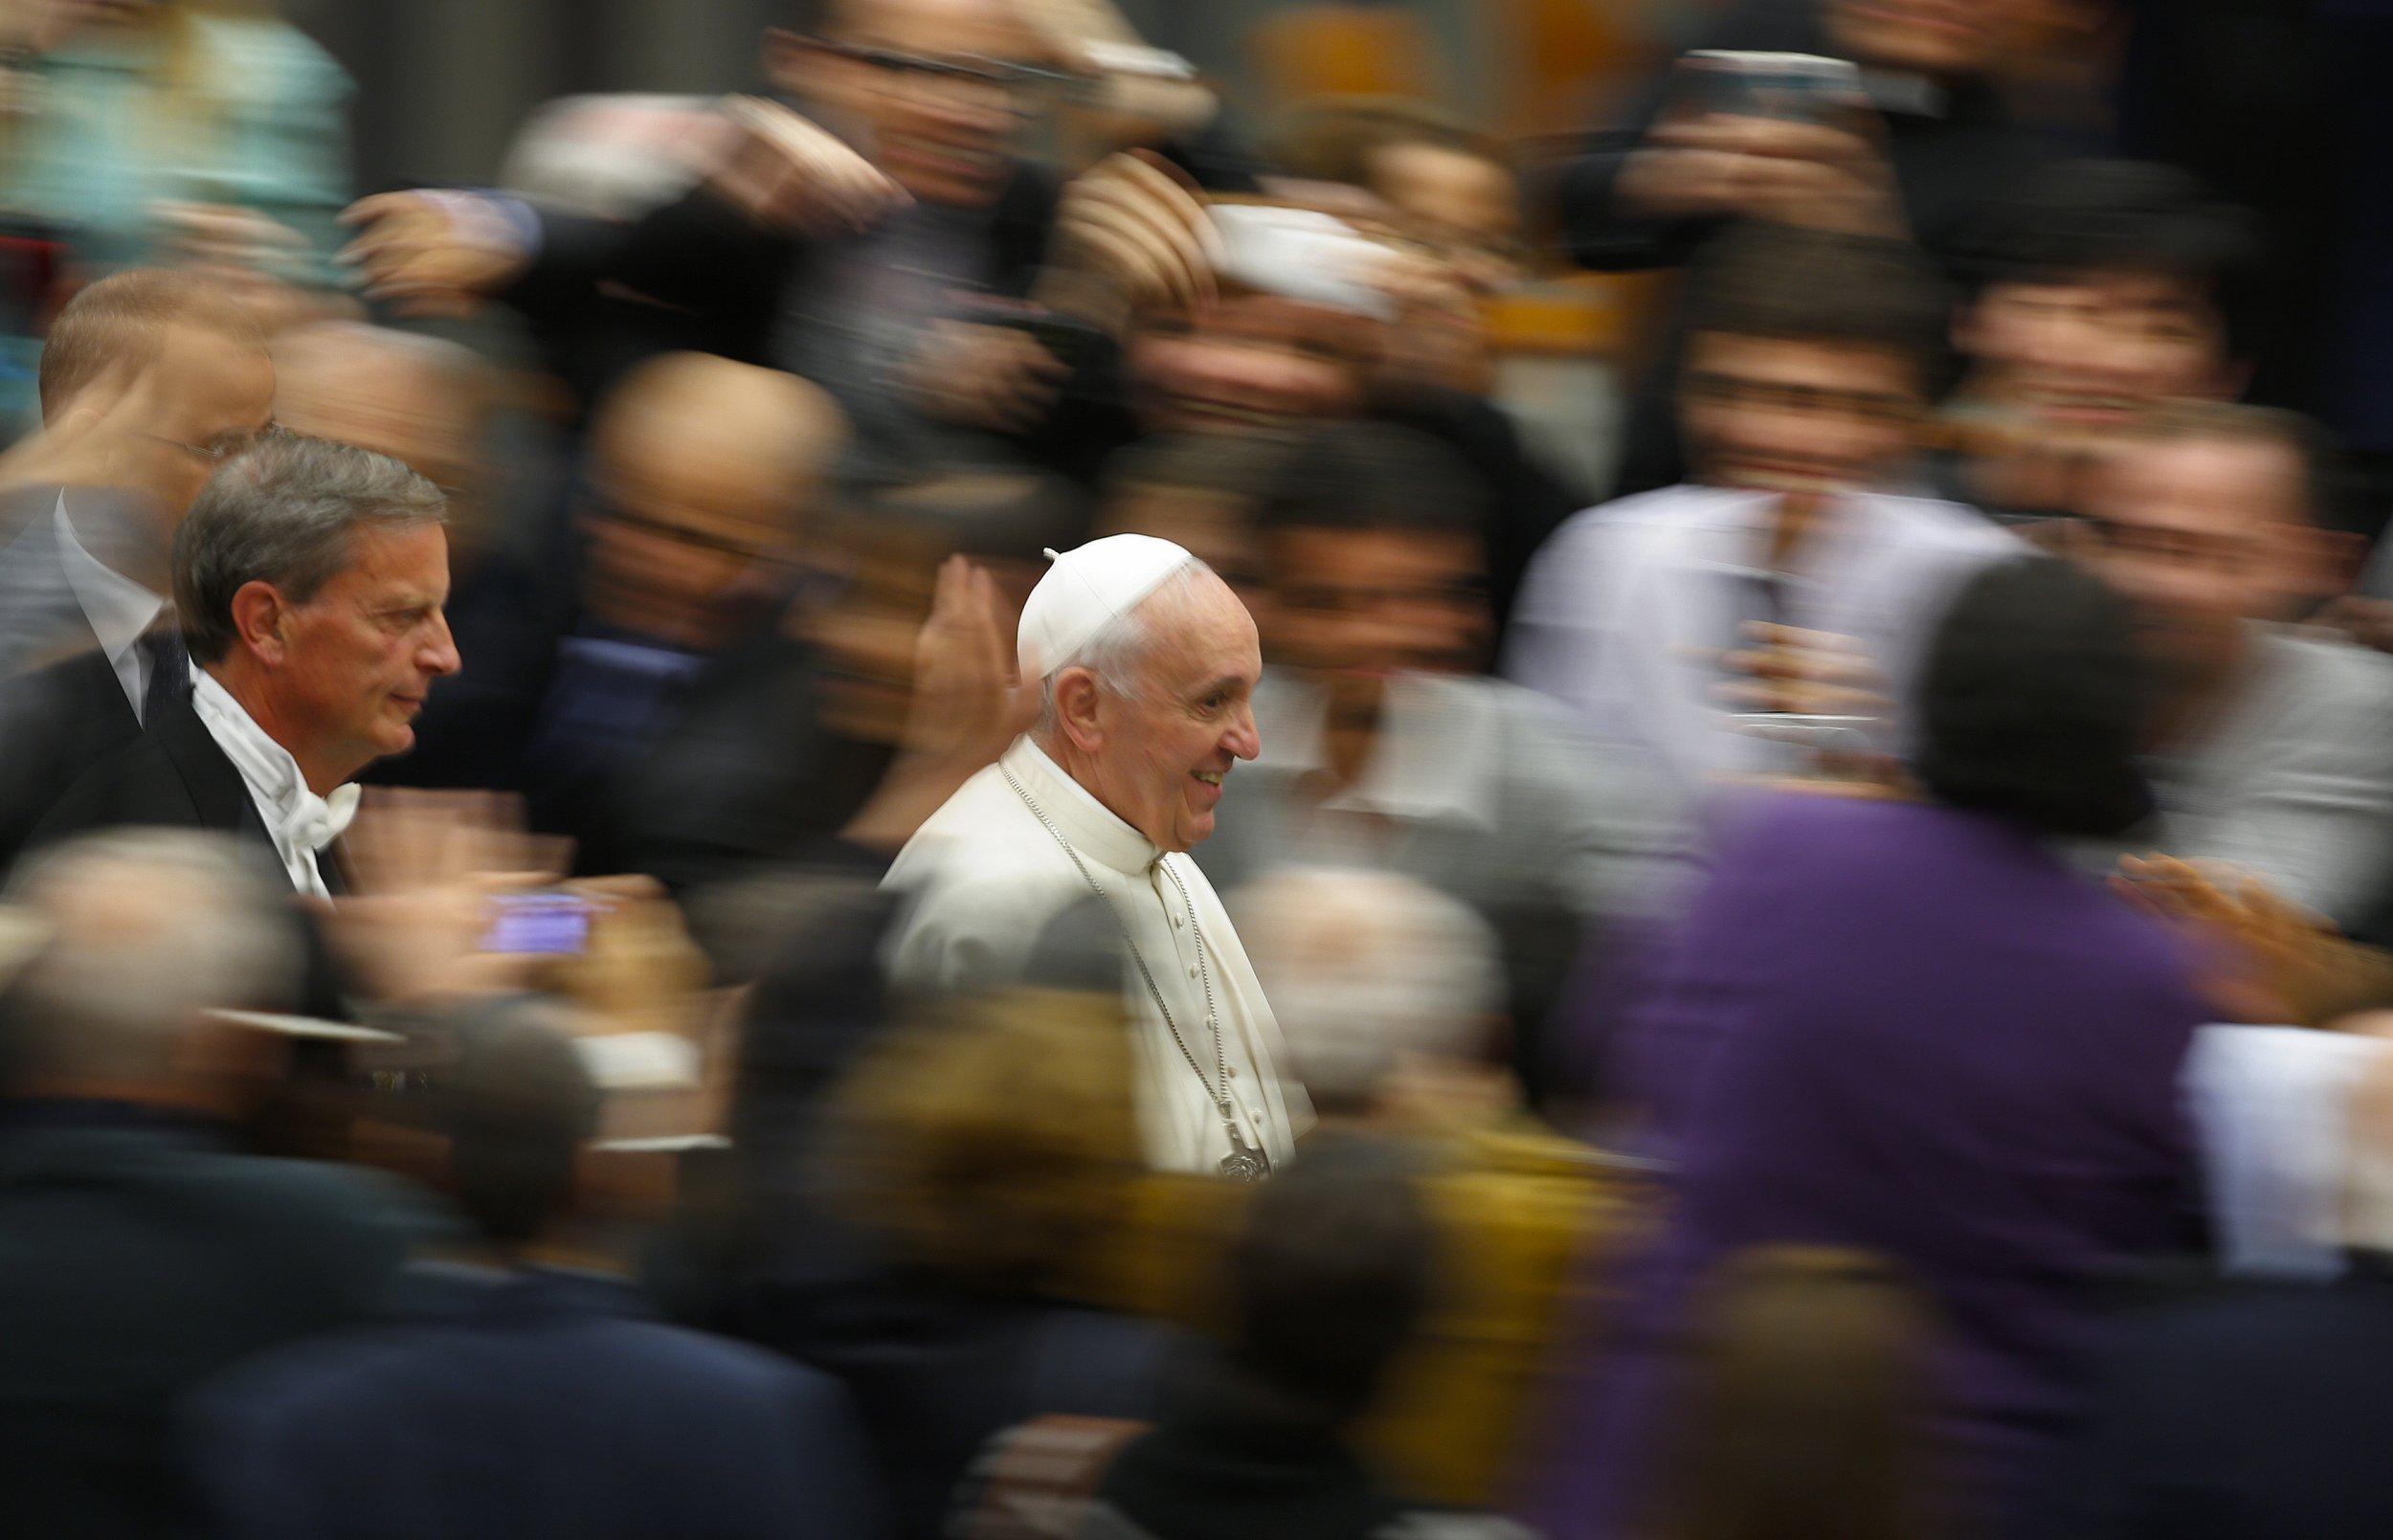 Pope Francis April 10